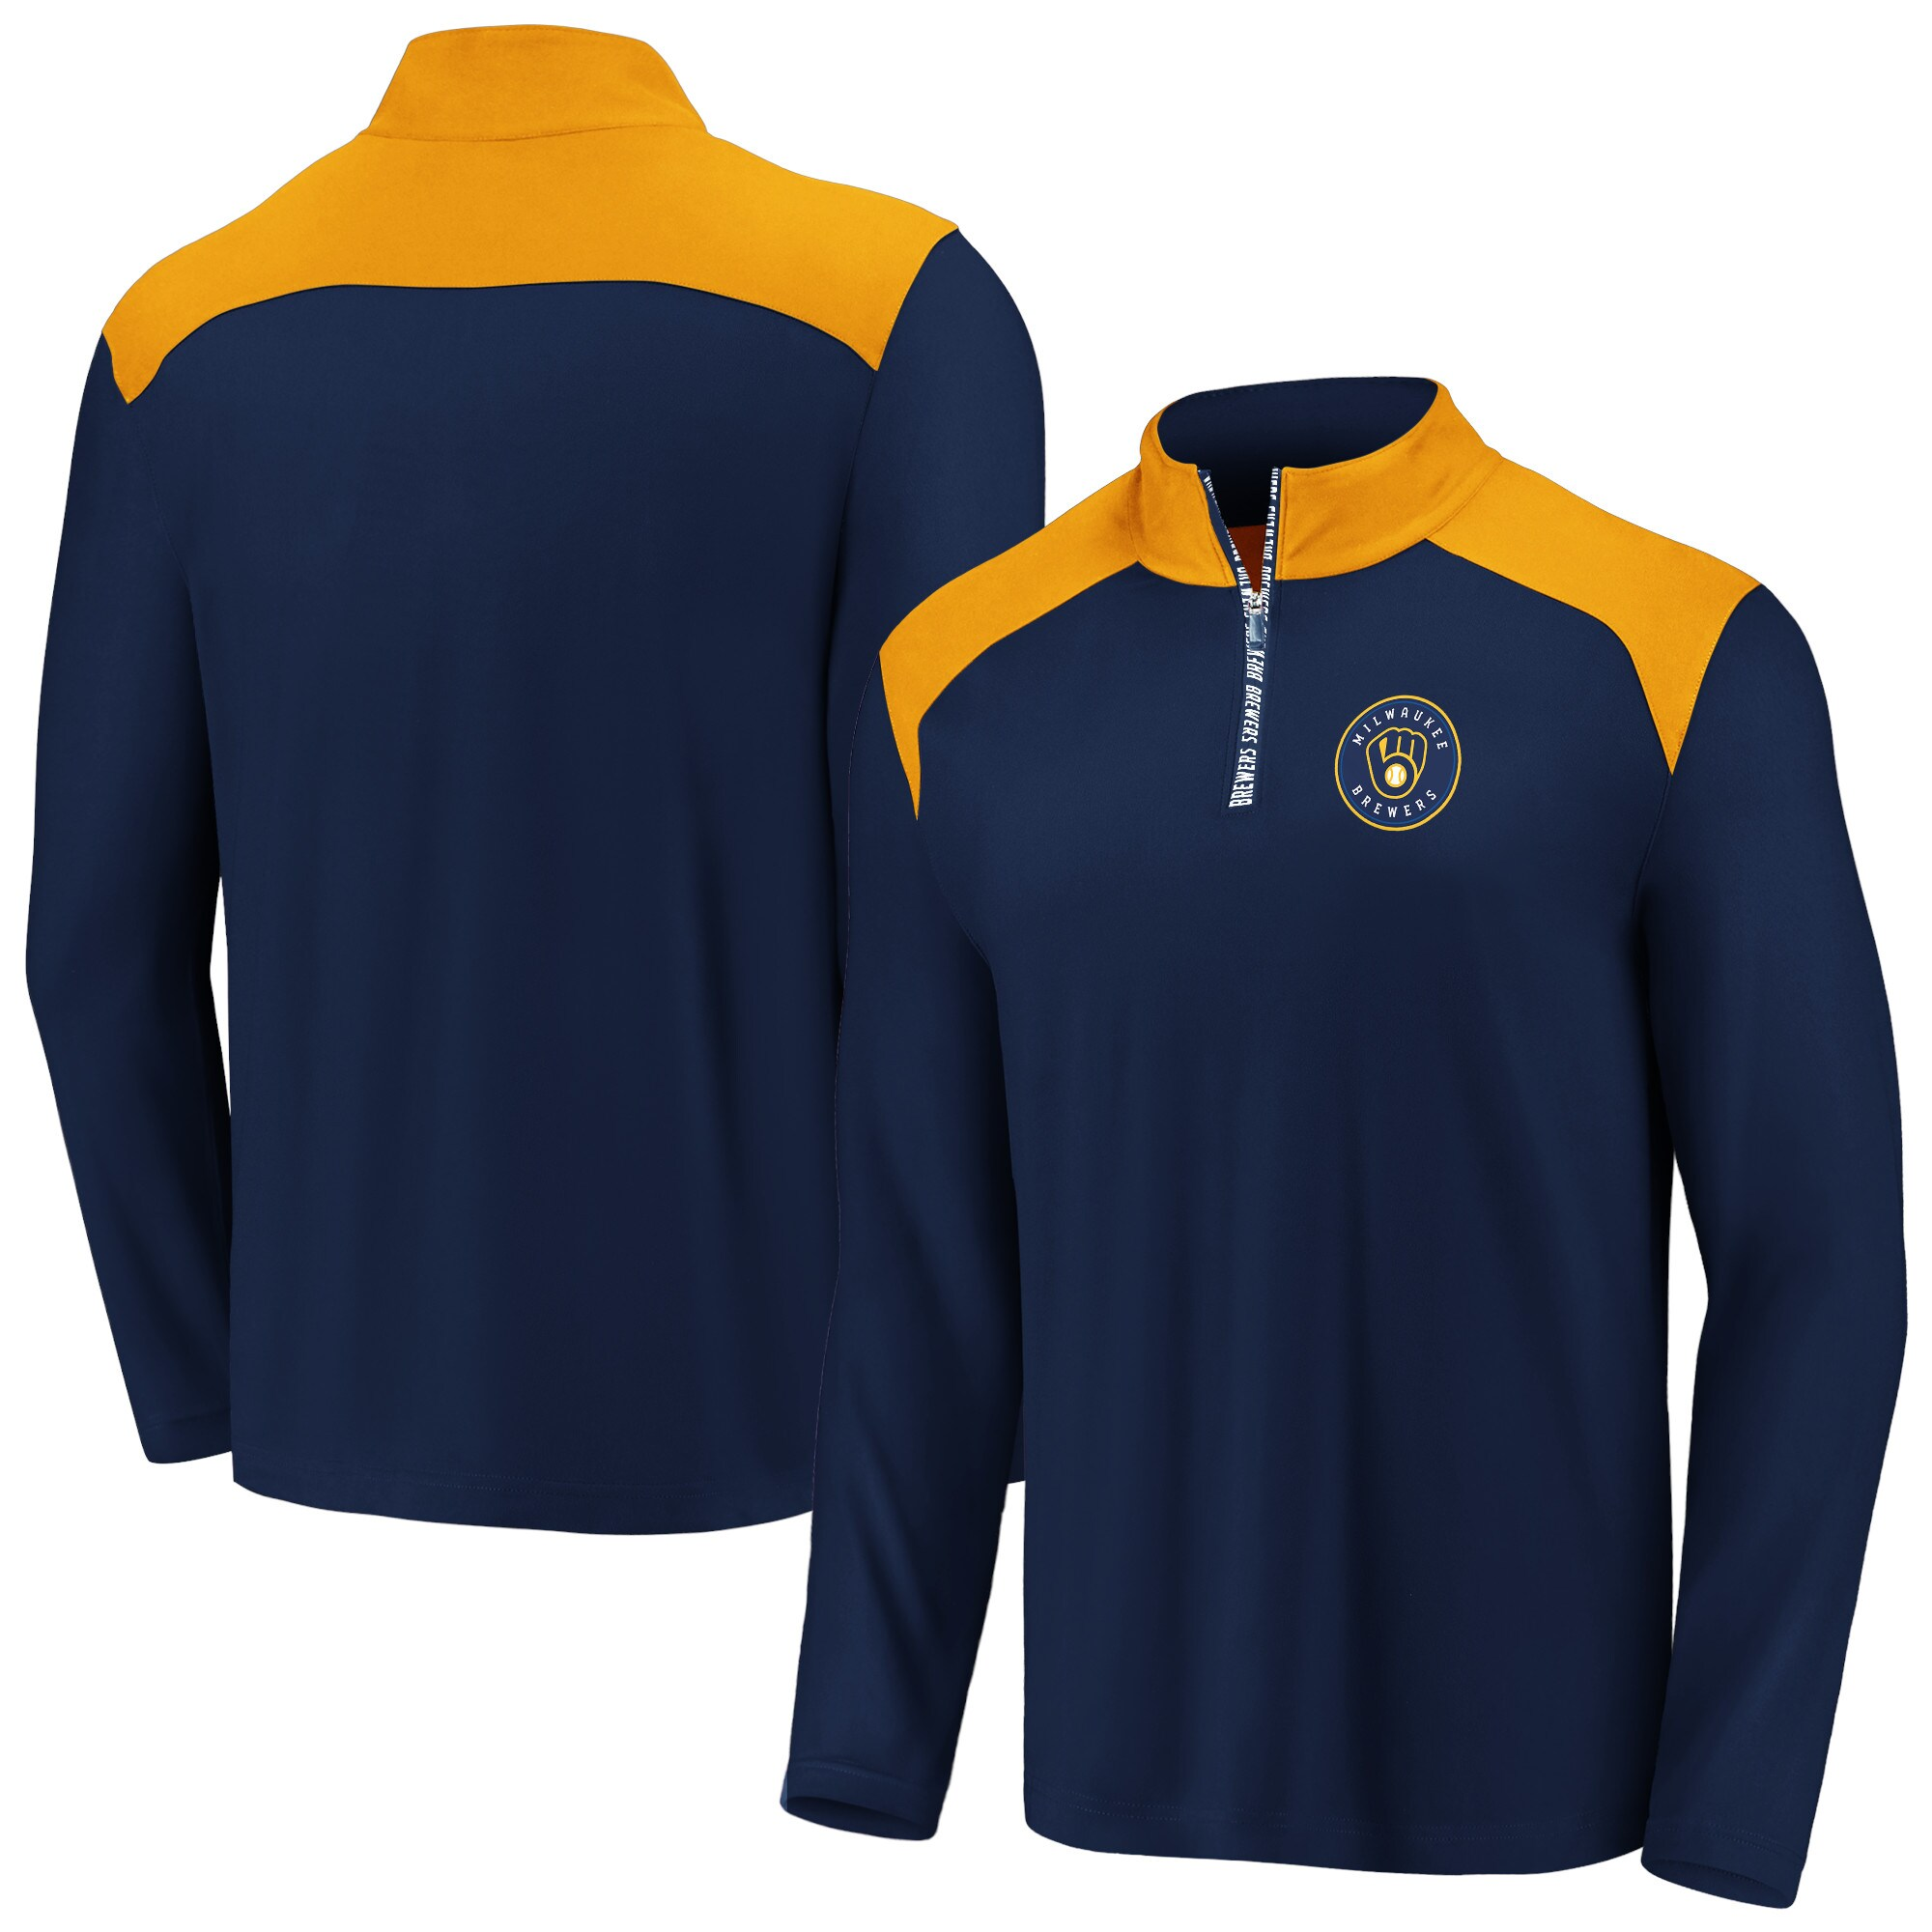 Milwaukee Brewers Fanatics Branded Iconic Clutch Quarter-Zip Pullover Jacket - Navy/Gold